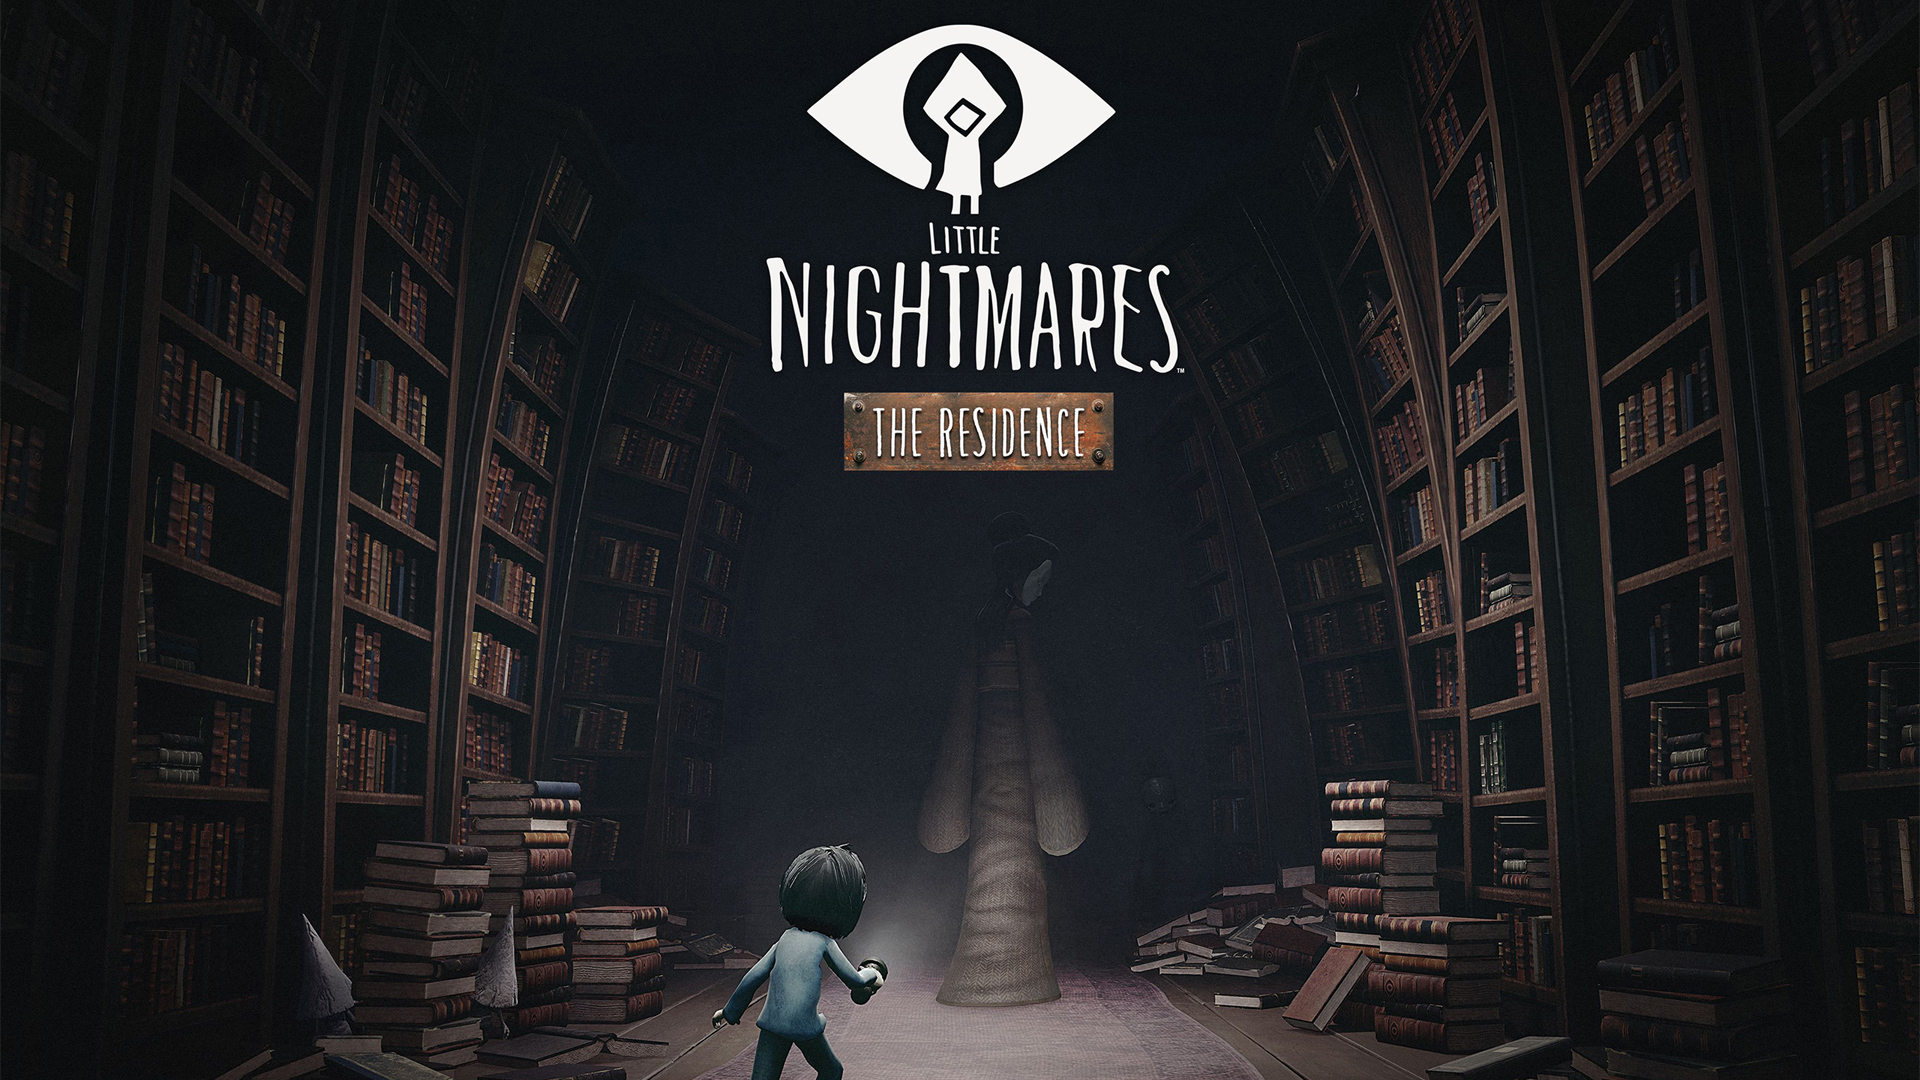 The Residence DLC Wallpaper from Little Nightmares gamepressurecom 1920x1080